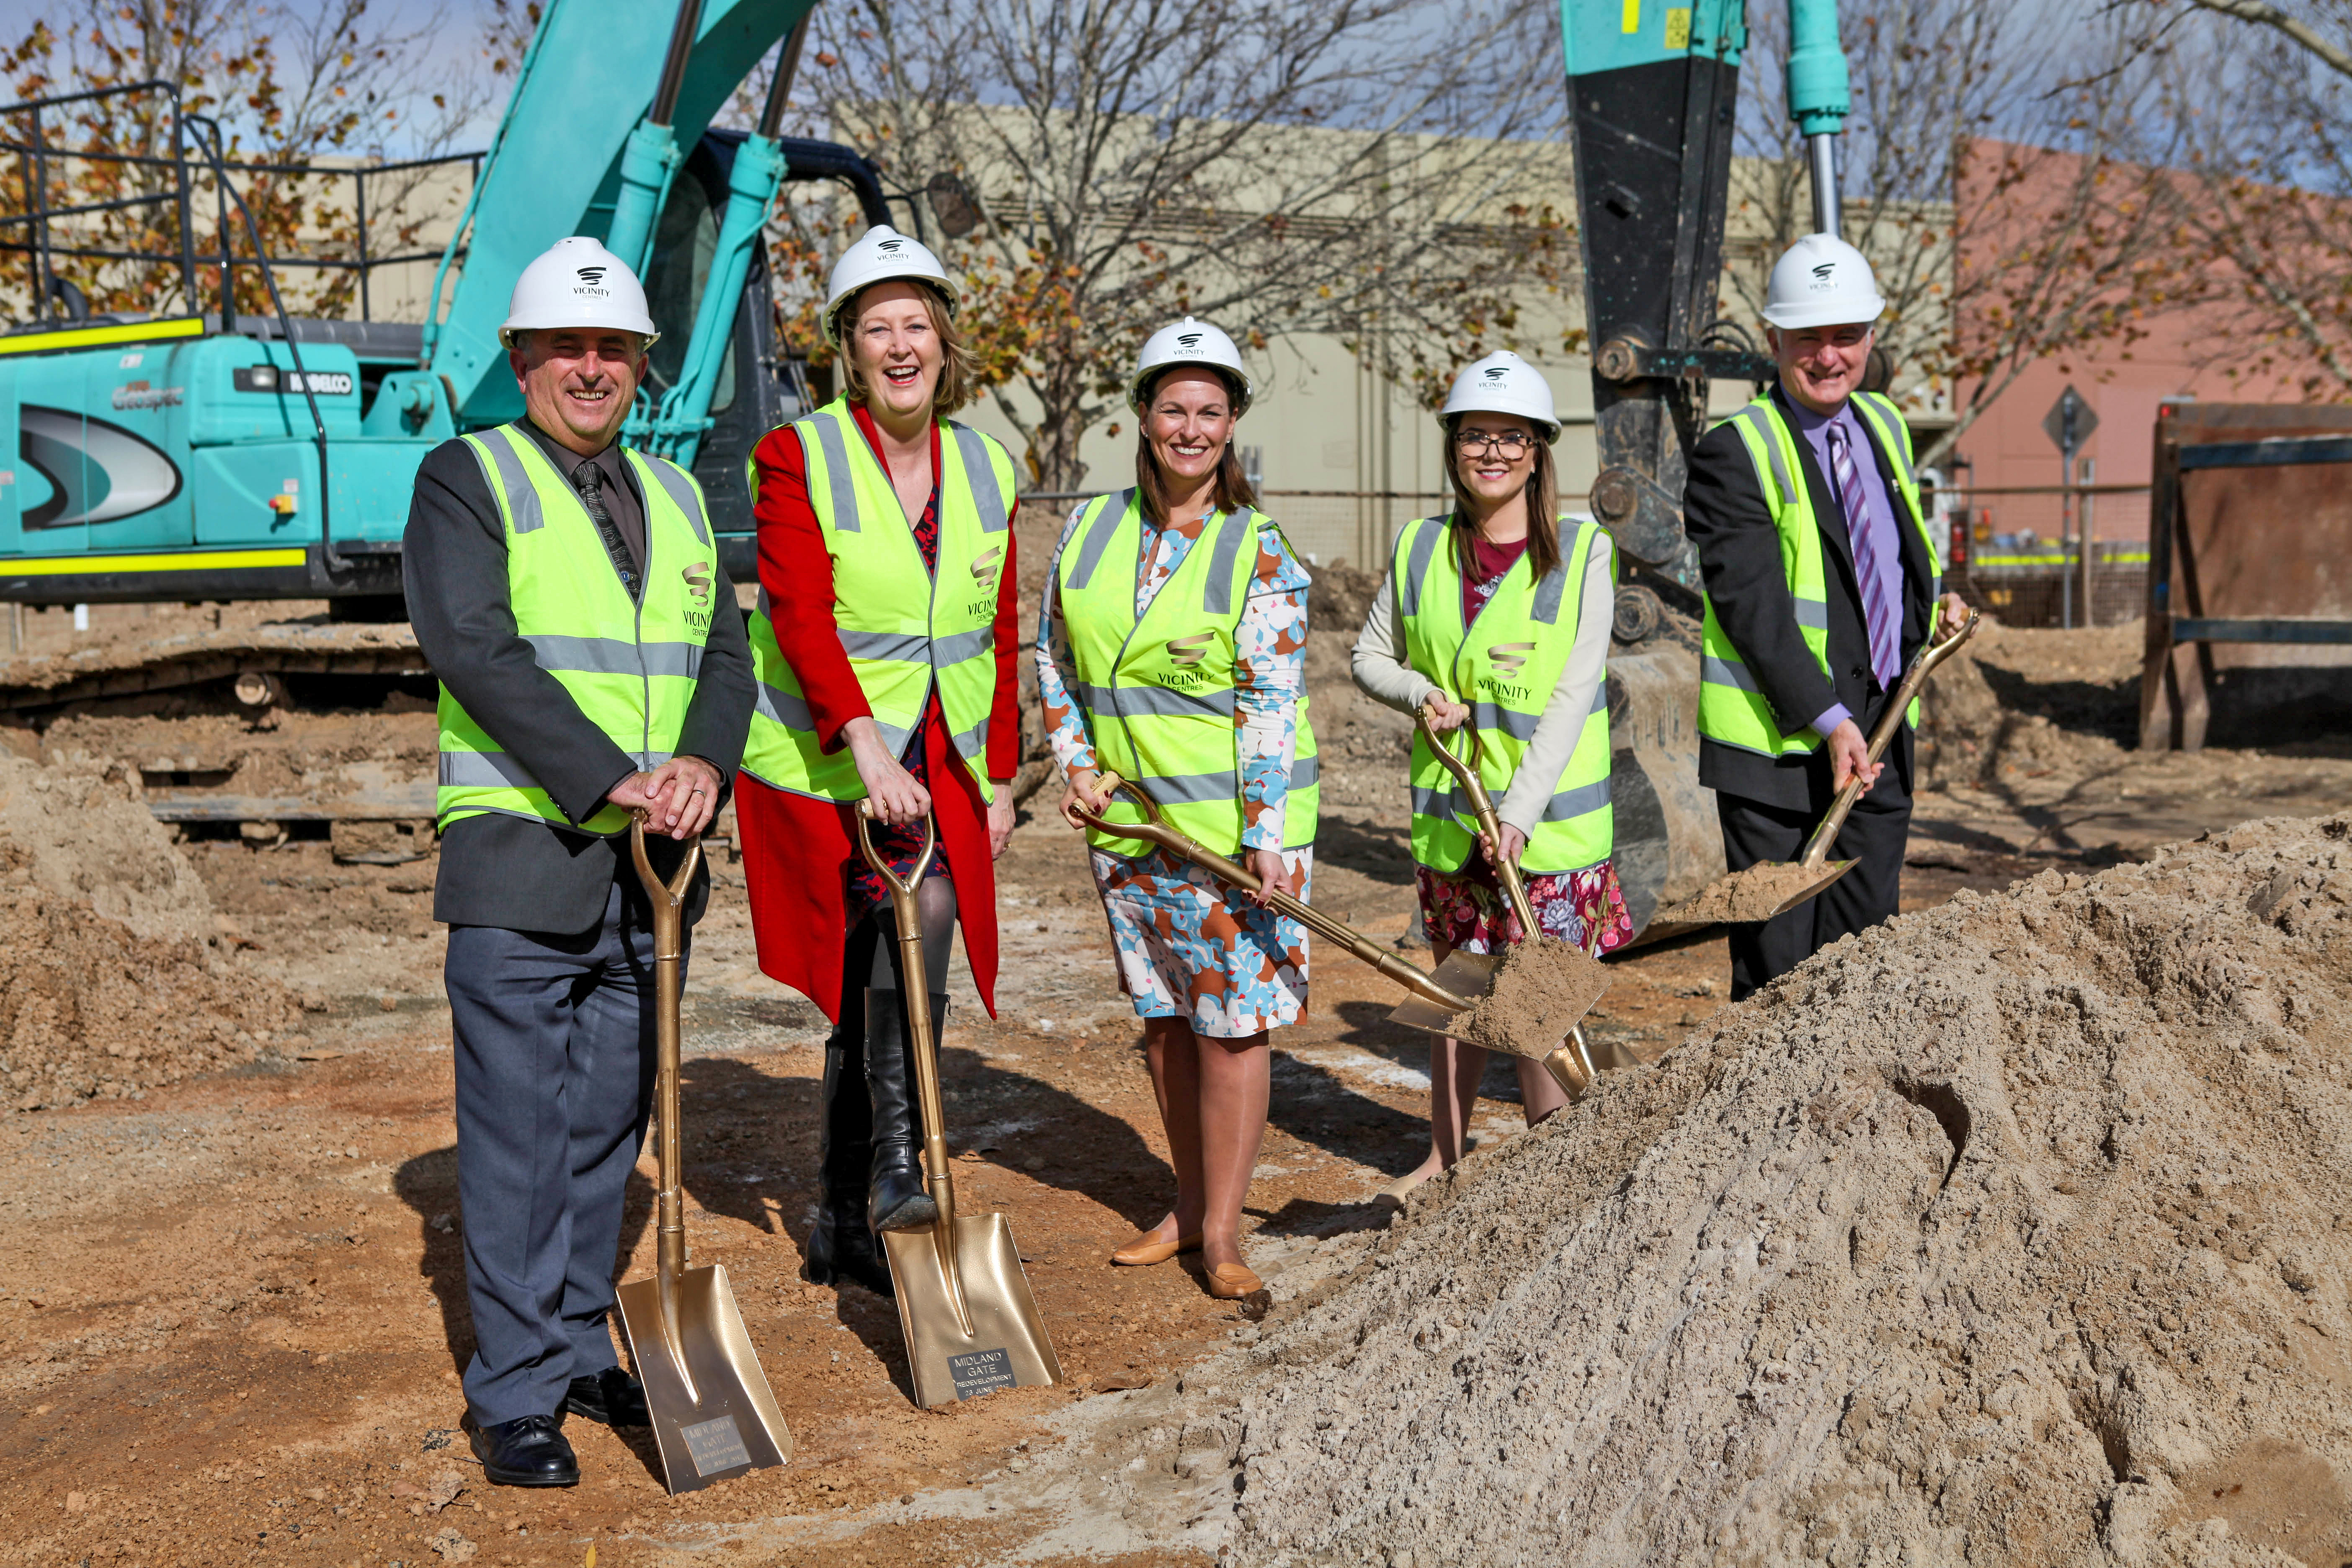 City of Swan Mayor, Mick Wainwright, State Local Member for Midland, the Hon Michelle Roberts MLA, Vicinity Centres Executive General Manager of Development, Carolyn Viney, Midland Gate Centre Manager Alison Broadbent and City of Swan CEO Mike Foley.